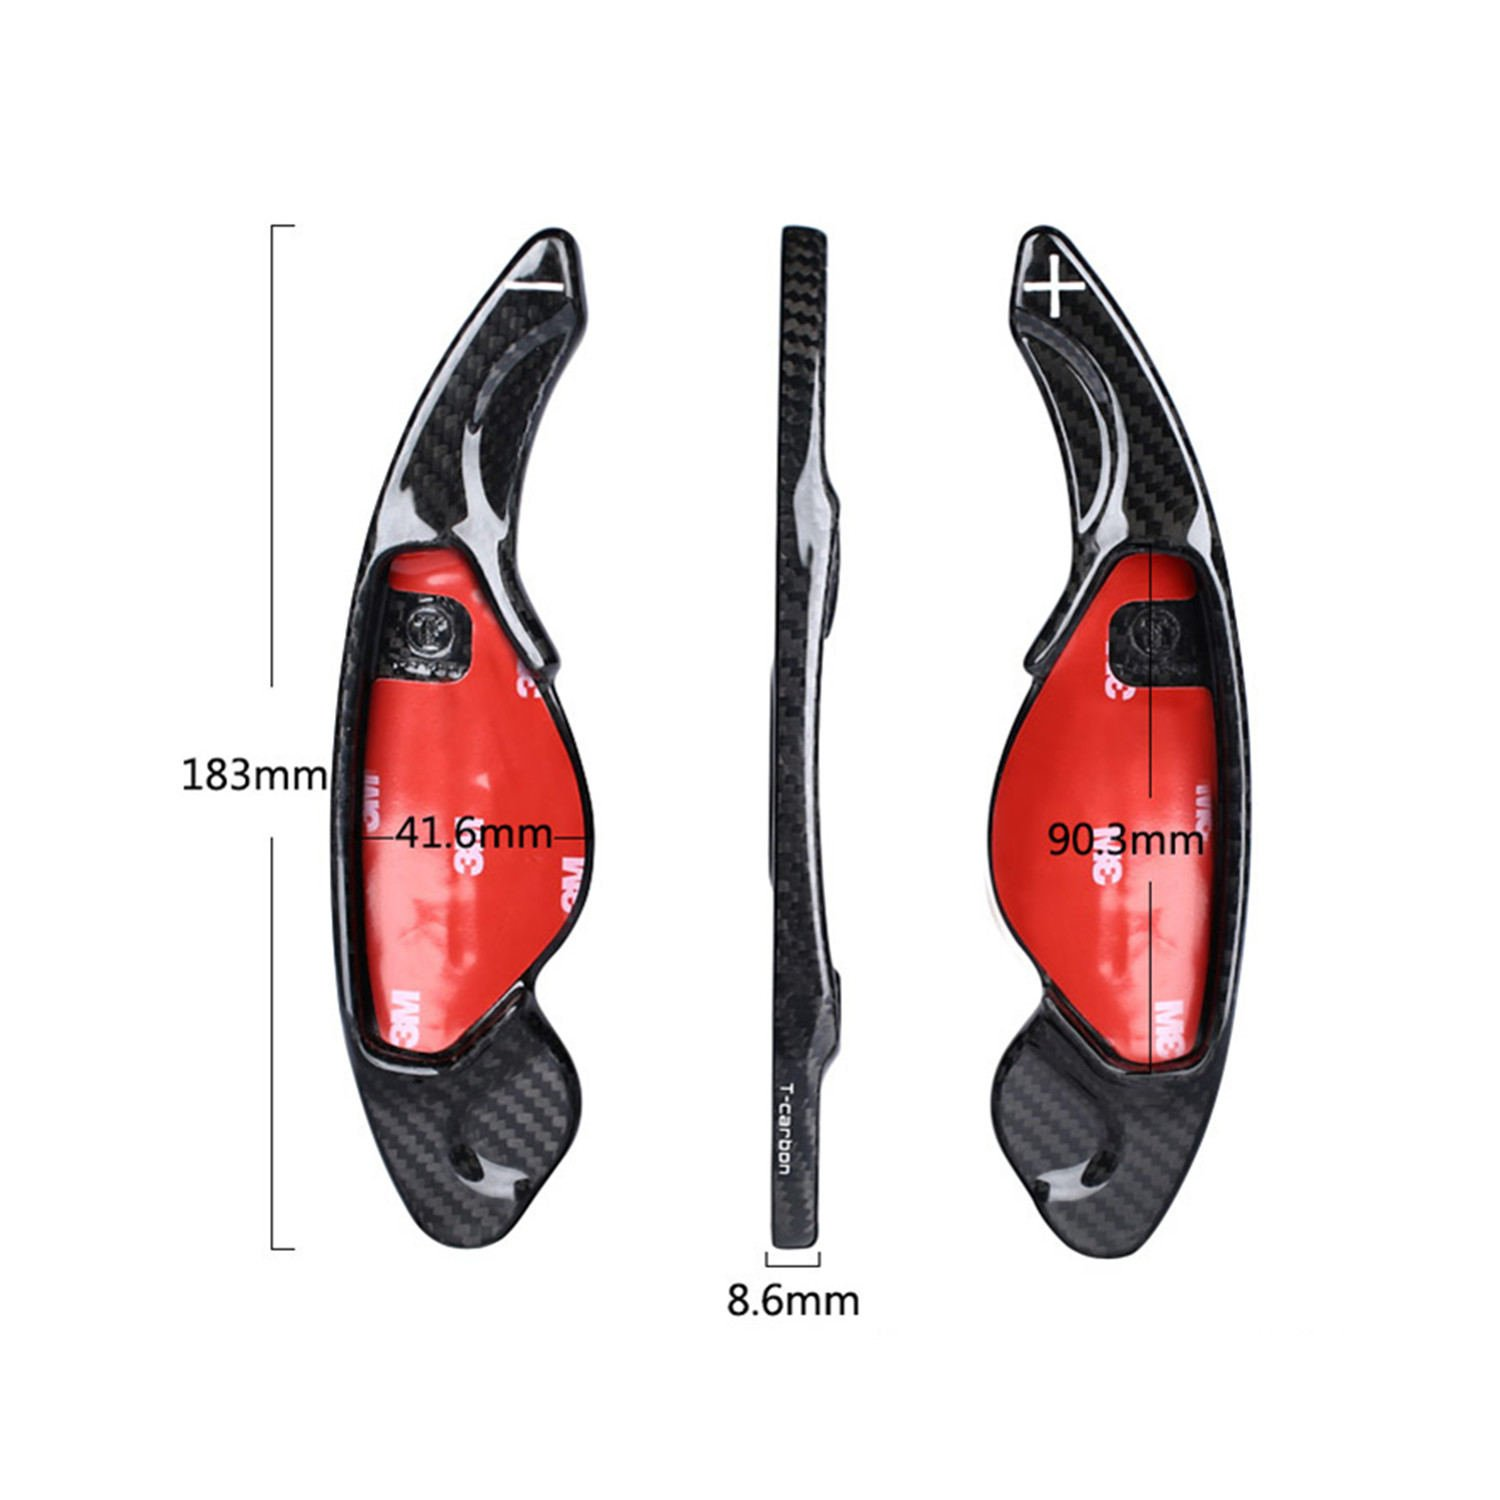 Red MissBlue Genuine Pure Carbon Fiber Car Steering Wheel Shift Paddle Blade Shifter Extension for Jaguar XE Jaguar XF Jaguar XFL Jaguar XJ Jaguar F-Type Jaguar F-PACE